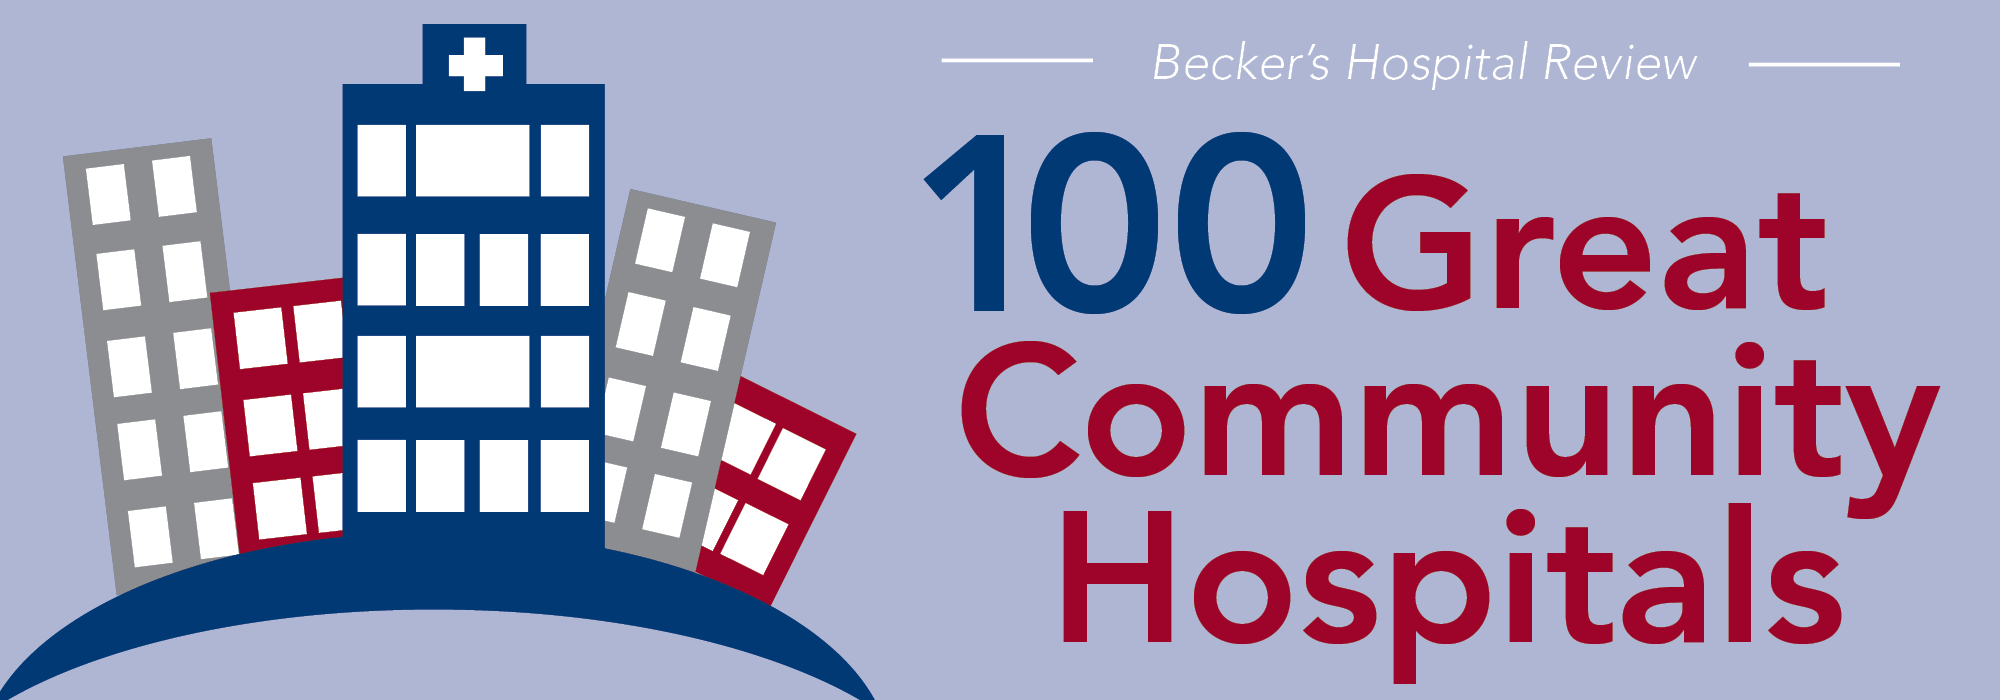 100 Great Community Hospitals 2016